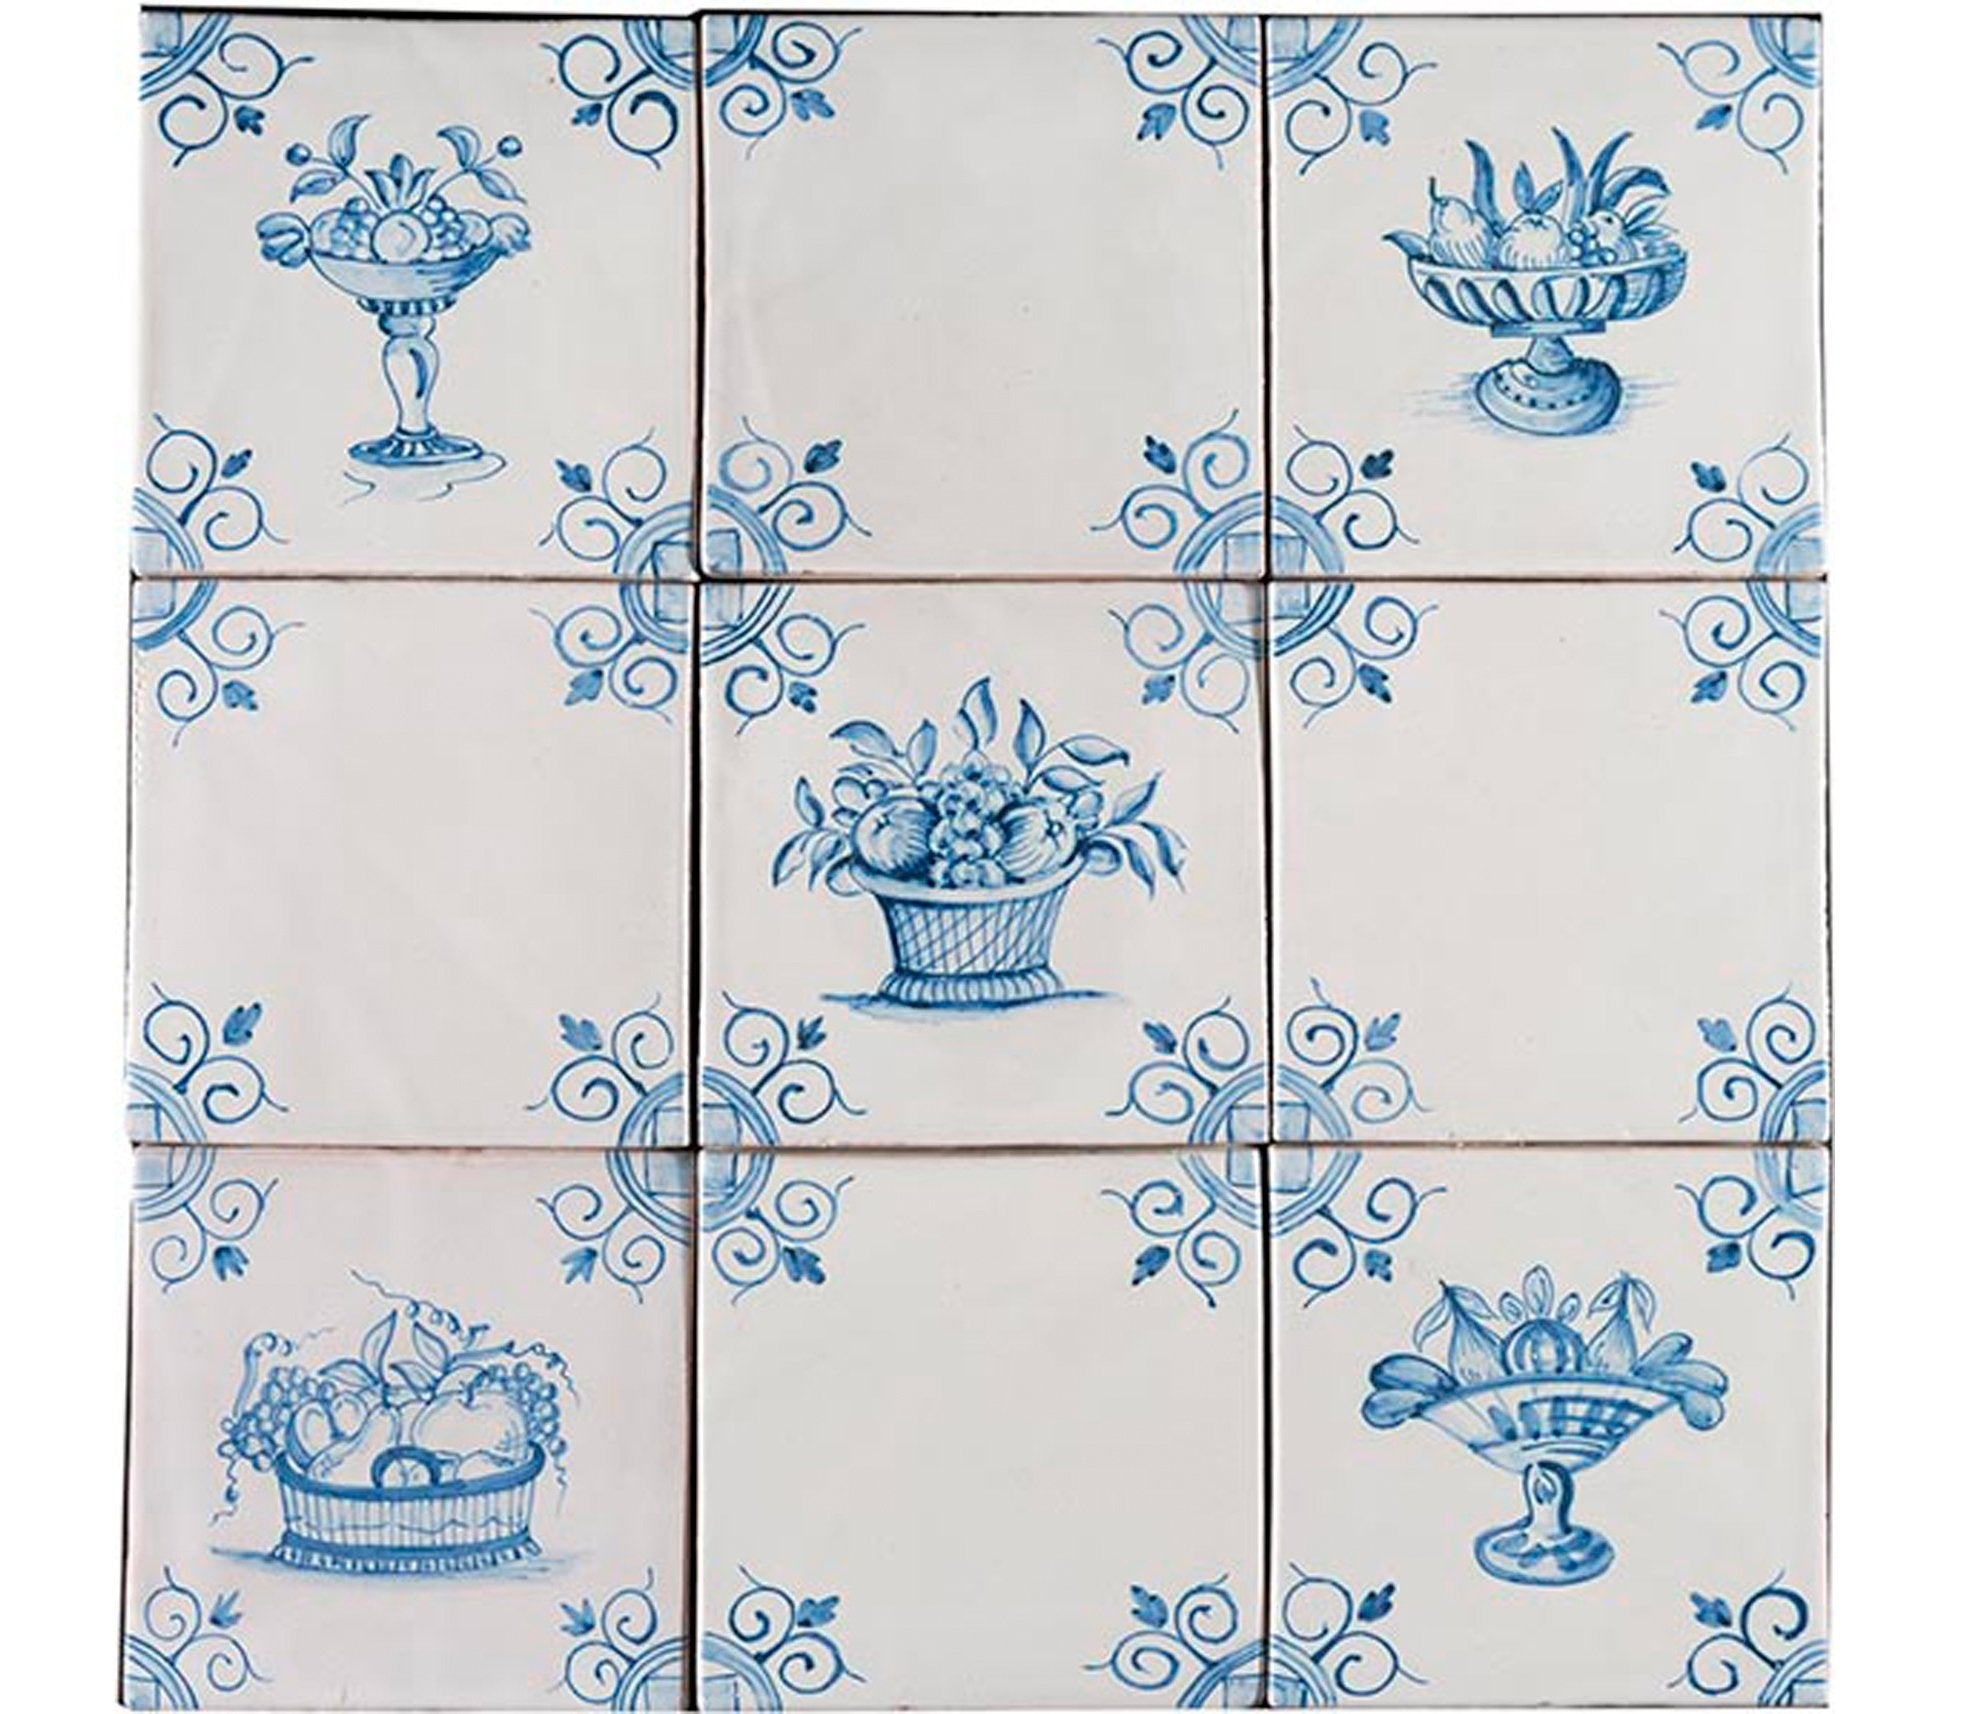 Series S Handpainted Tiles Product Image 51